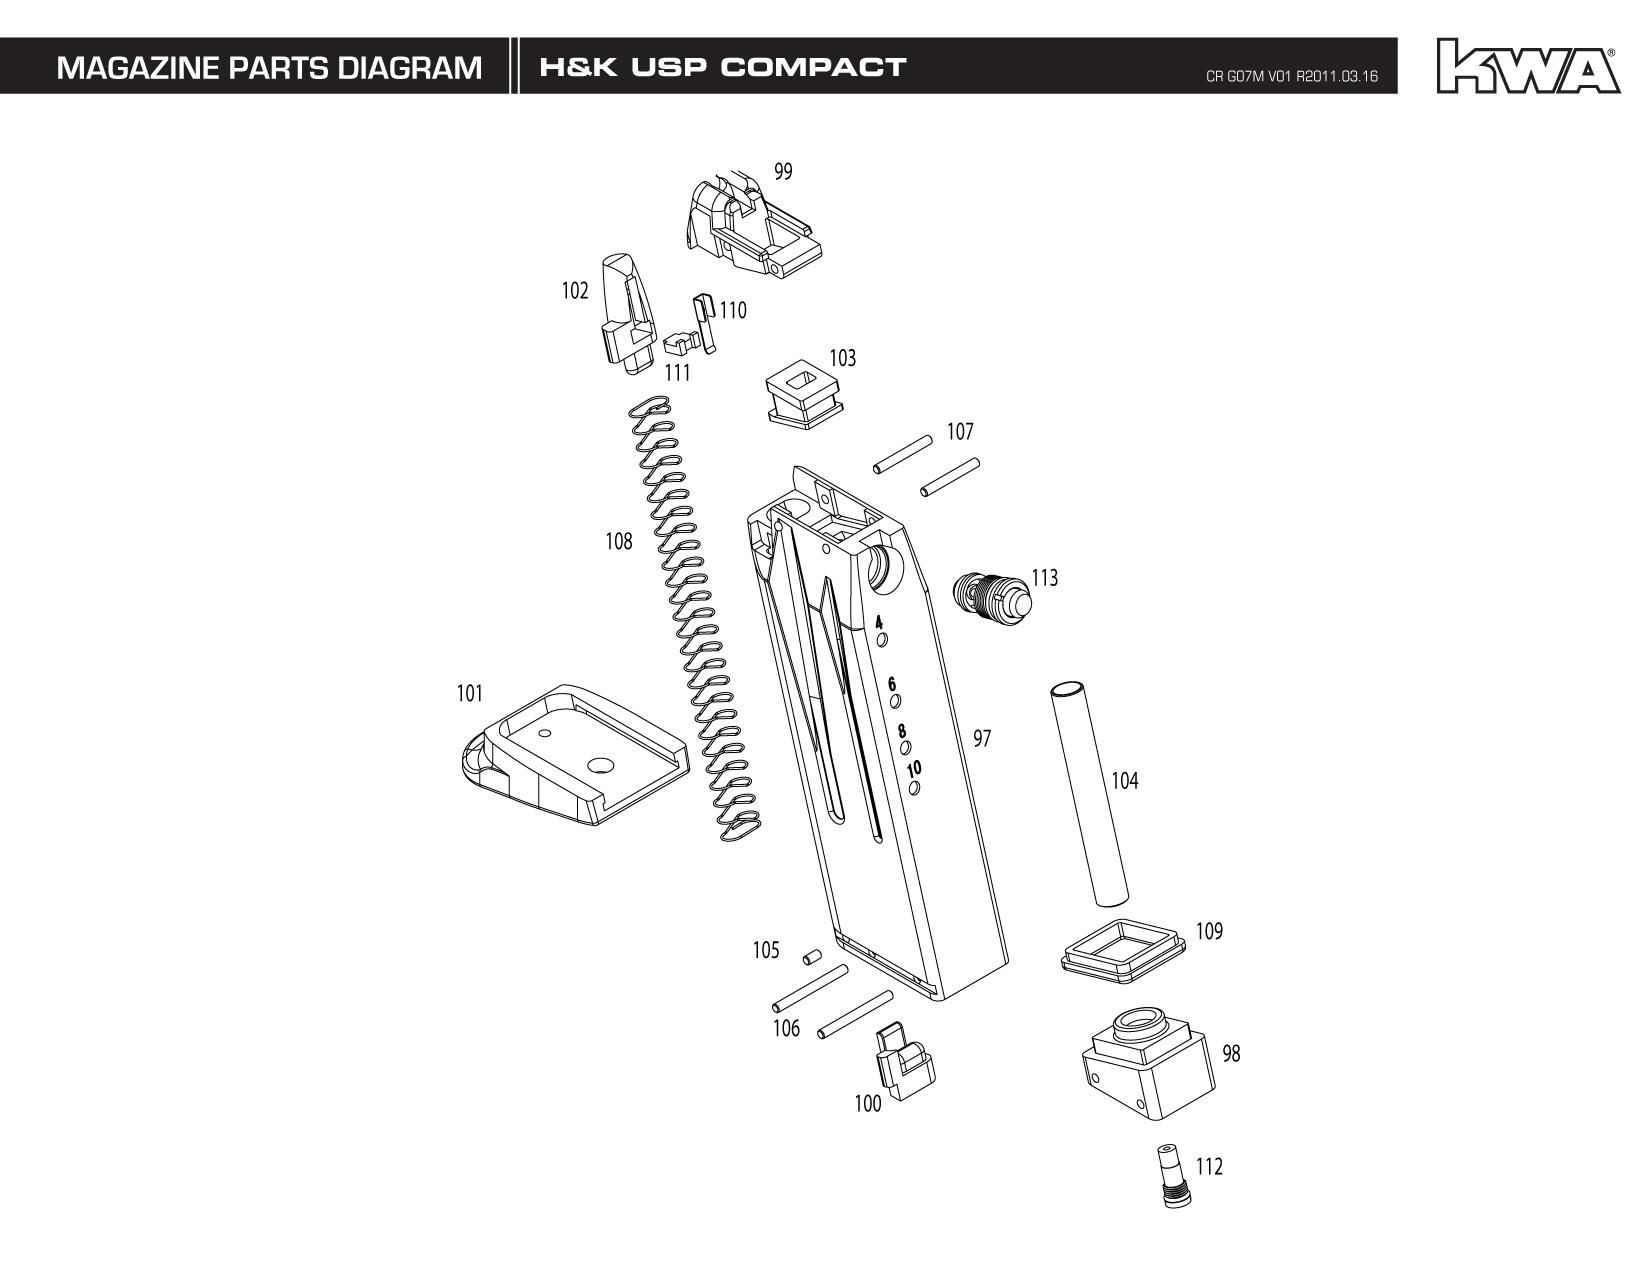 Kj Works Parts Diagram